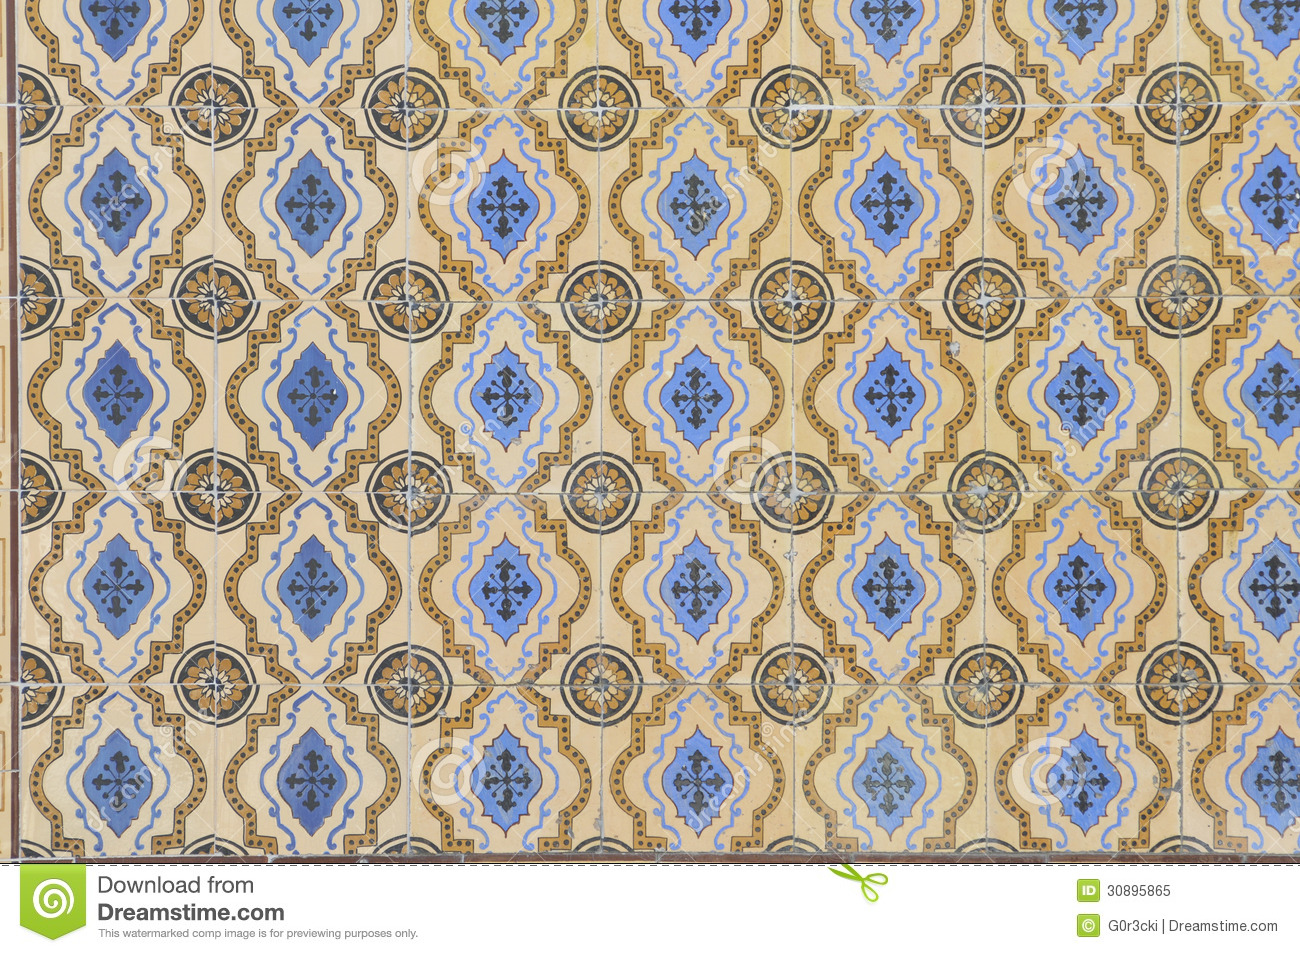 Portuguese Blue and Yellow Glazed Tiles, Textures, Craft